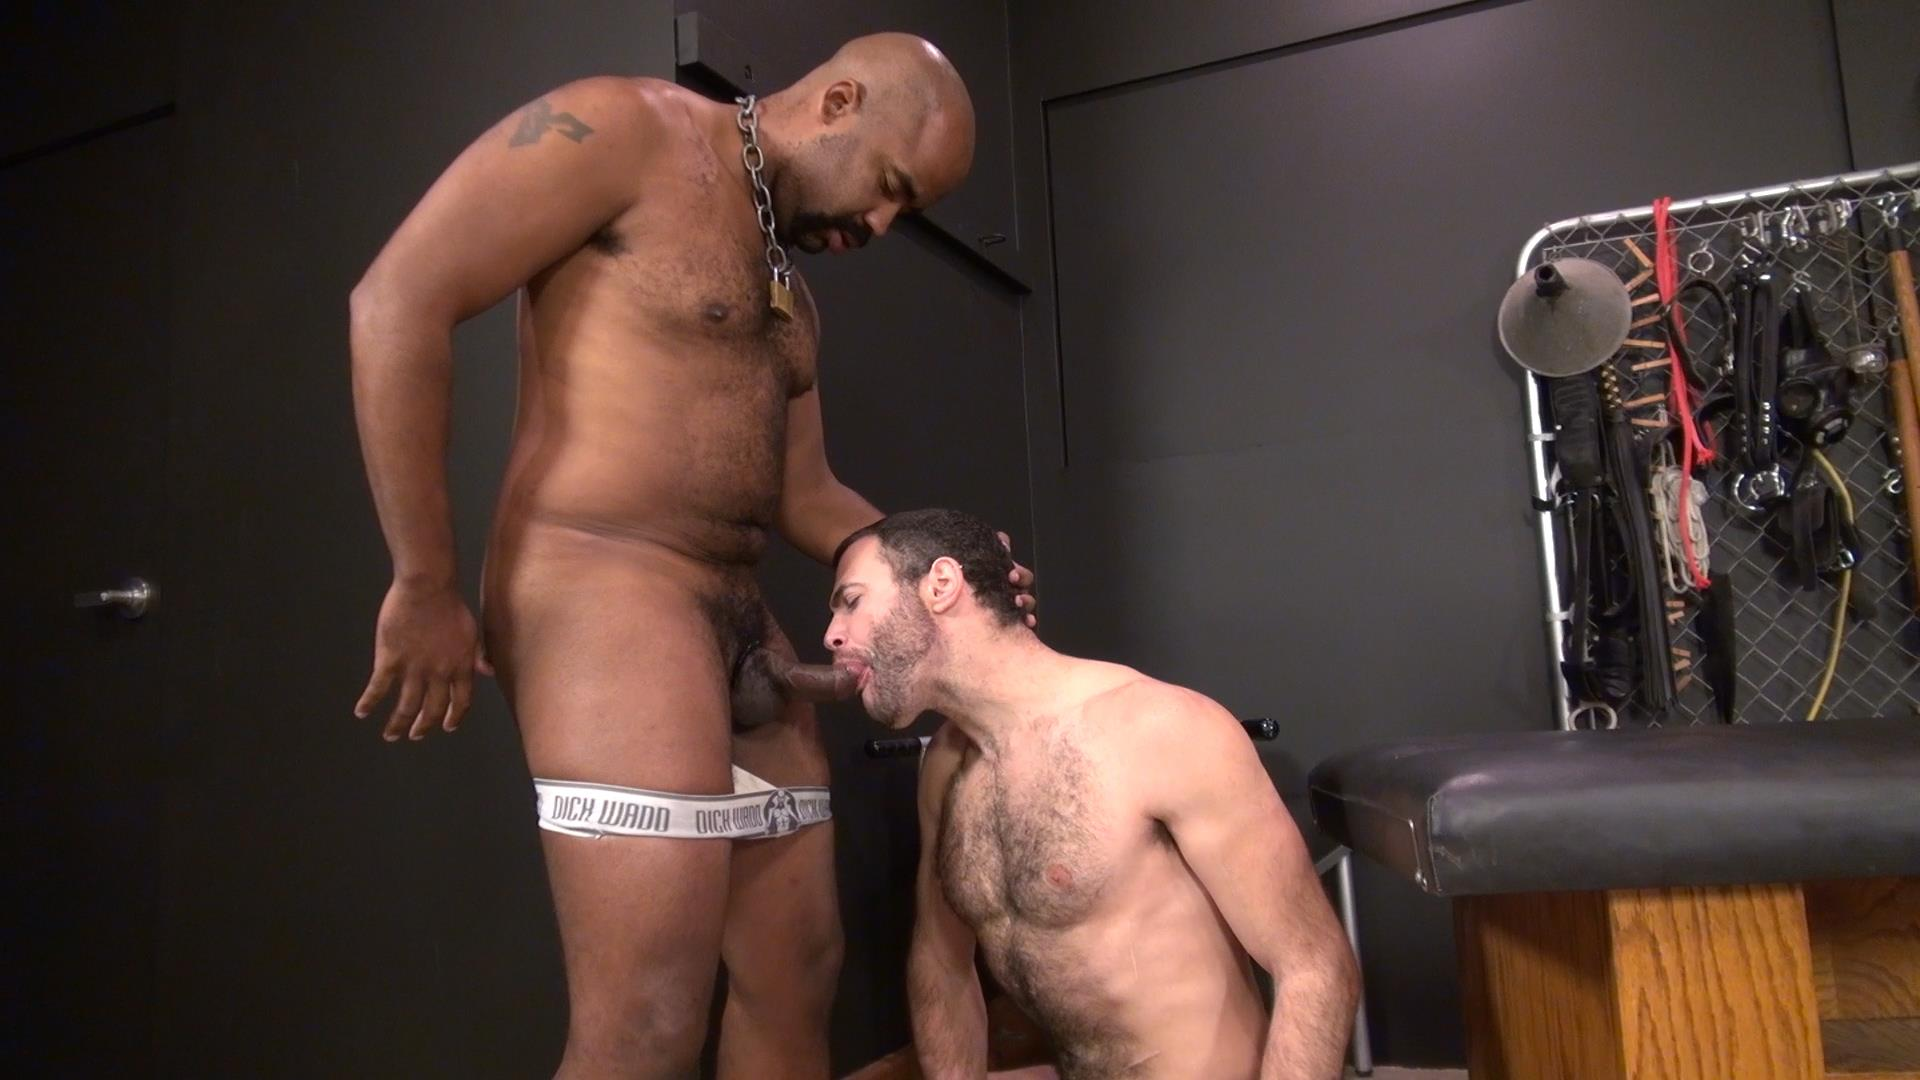 Black stud pulls cock out his boxers and gets a great blow job 7